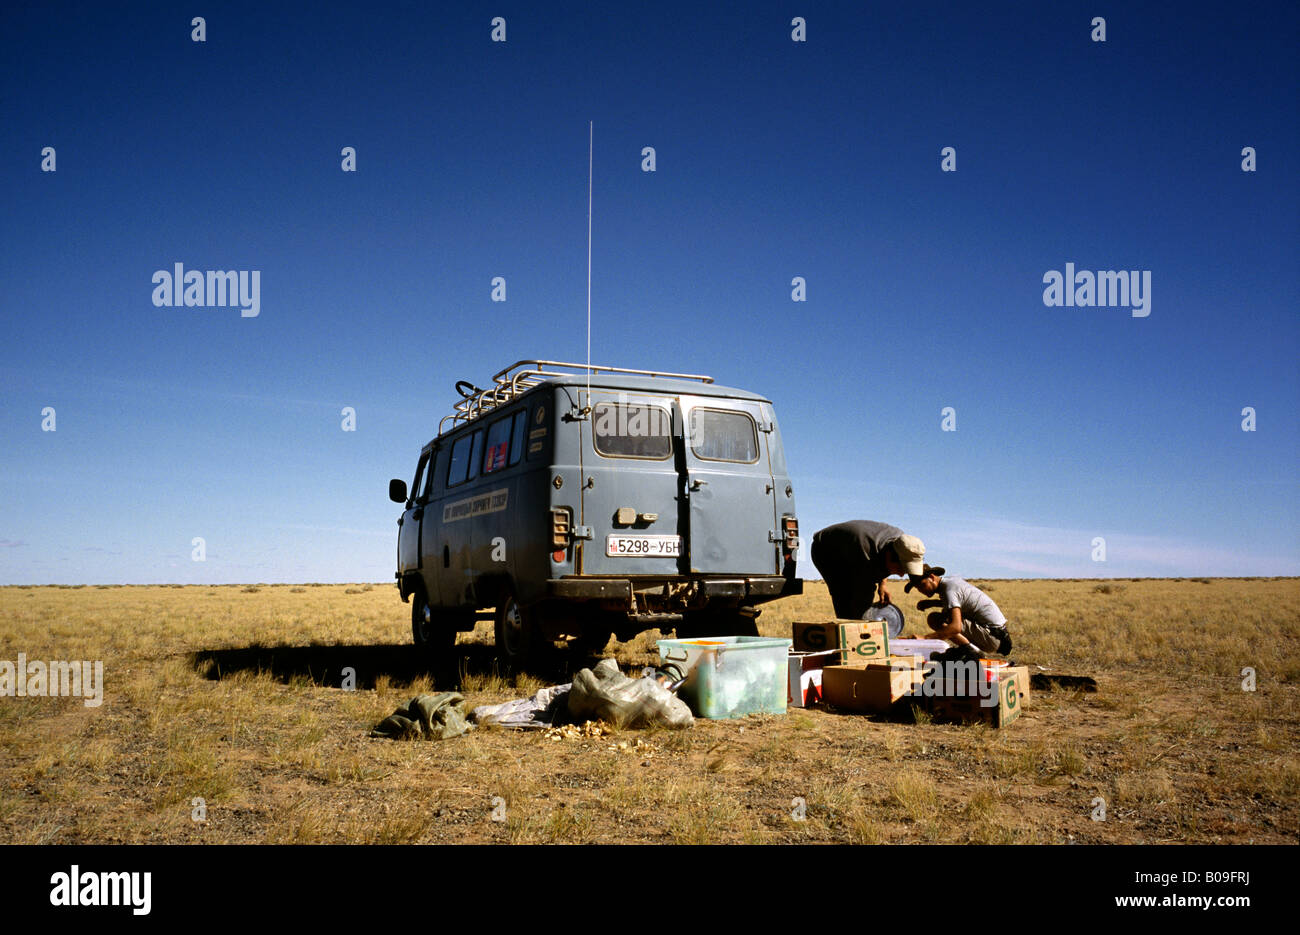 Oct 10, 2006 - Locals unloading gear from their Russian made 4WD van in the Gobi desert of Outer Mongolia. - Stock Image